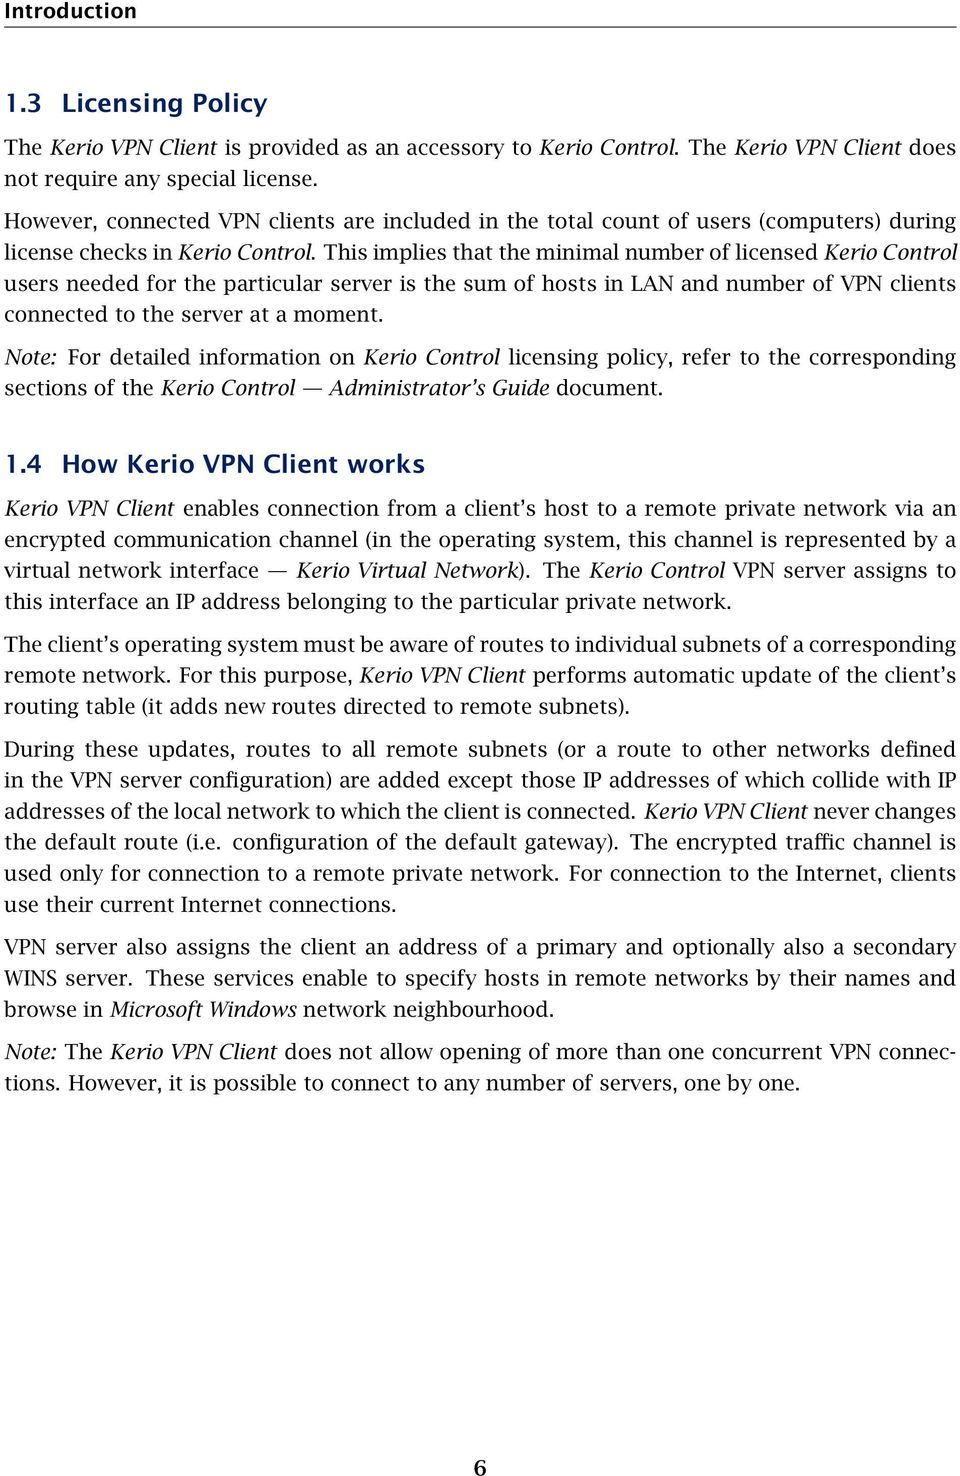 This implies that the minimal number of licensed Kerio Control users needed for the particular server is the sum of hosts in LAN and number of VPN clients connected to the server at a moment.